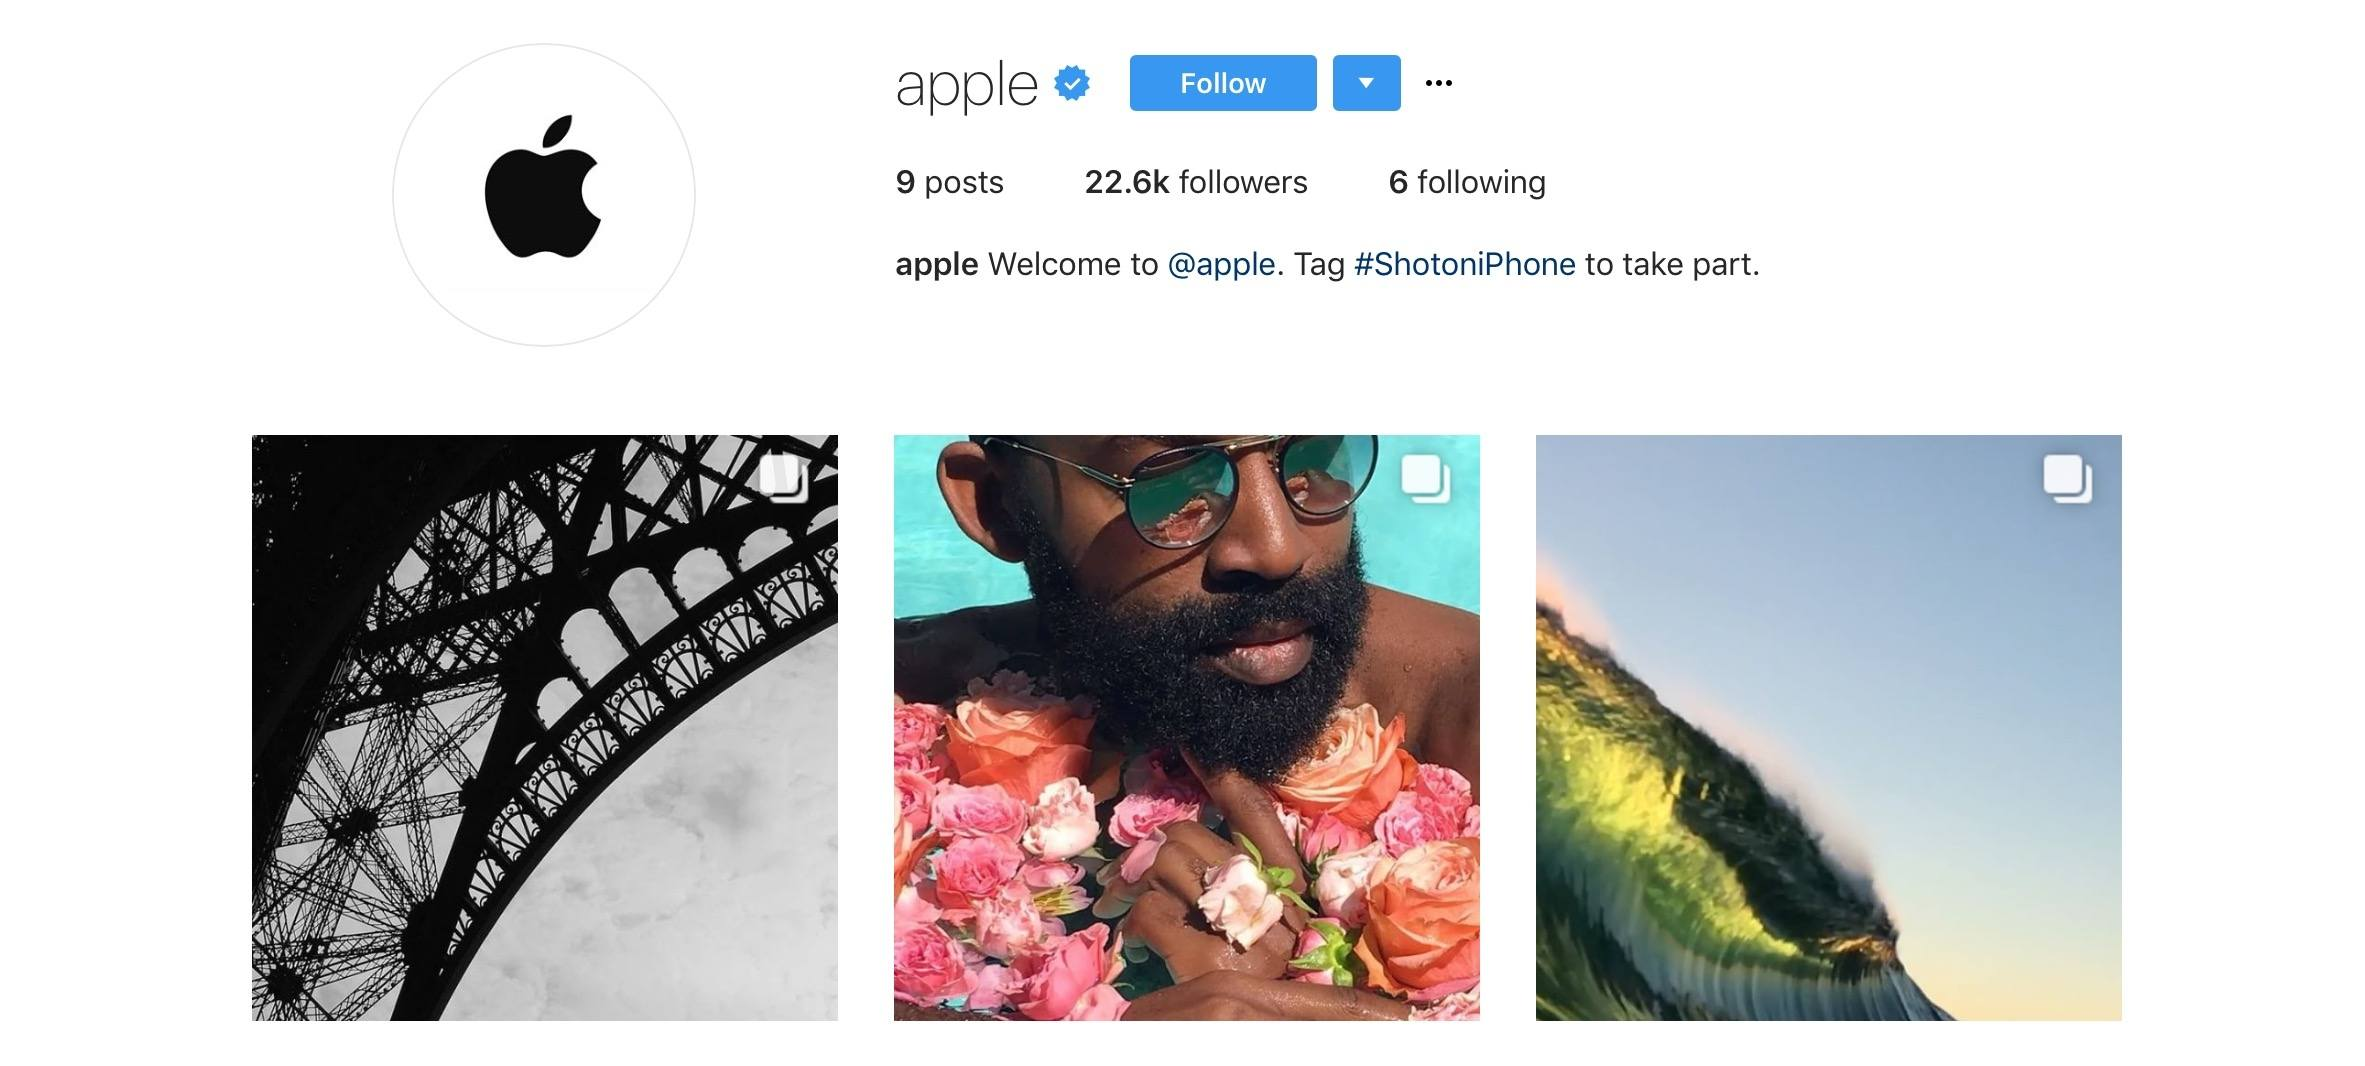 Apple Joins Instagram, Highlights Photos Shot on iPhone